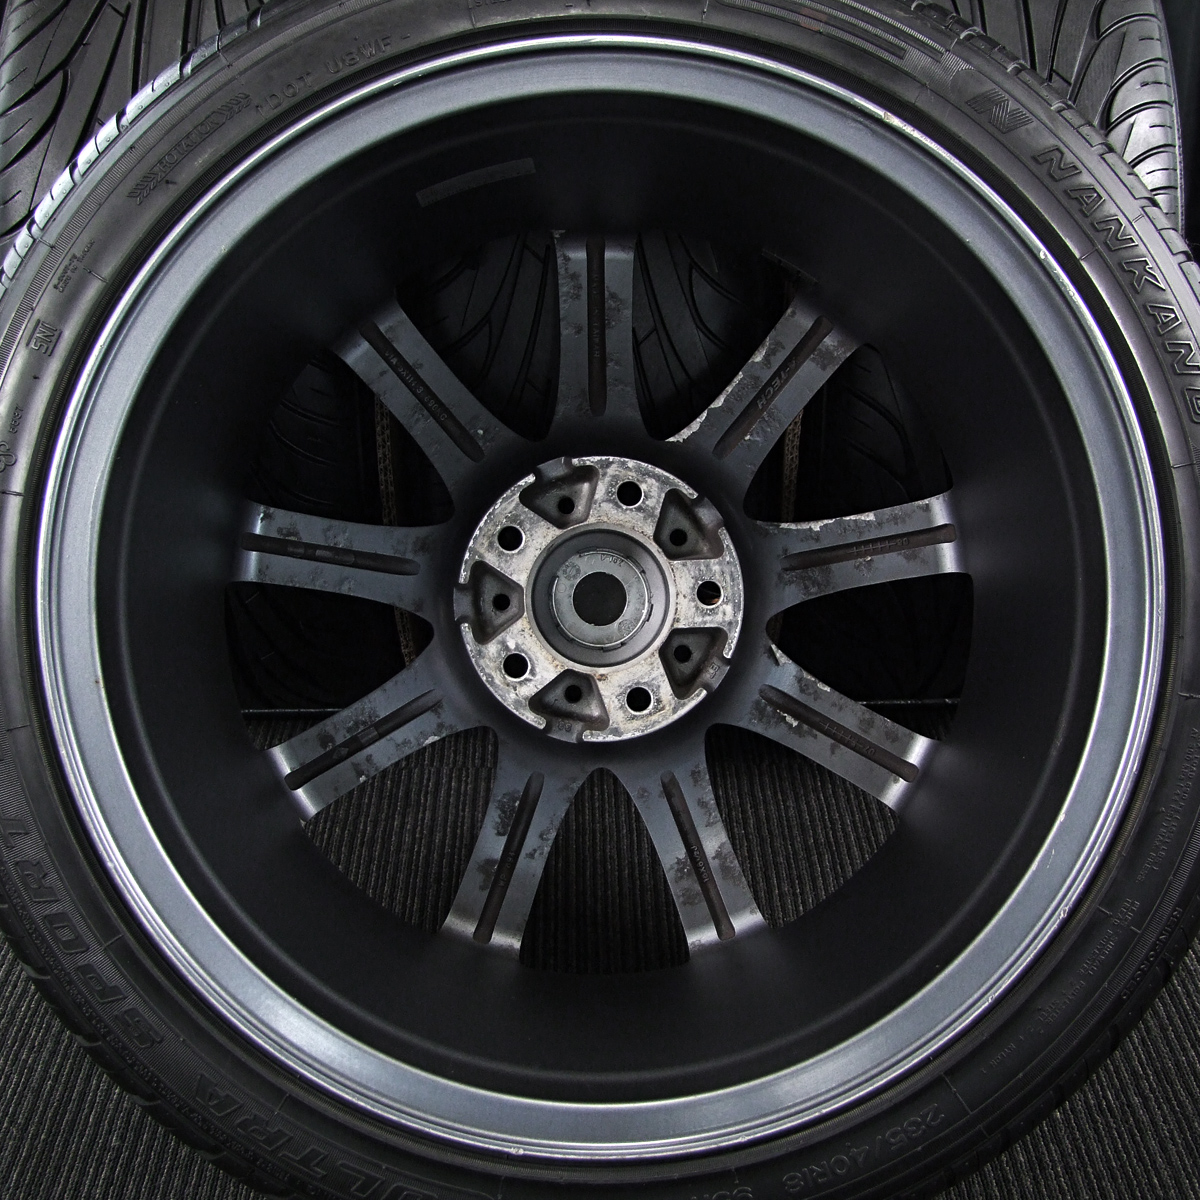 A-TECH FINAL SPEED FAVOR-Ⅸ マットガンメタ NANKANG ULTRA SPORT NS-2 235/40R18 4本SET